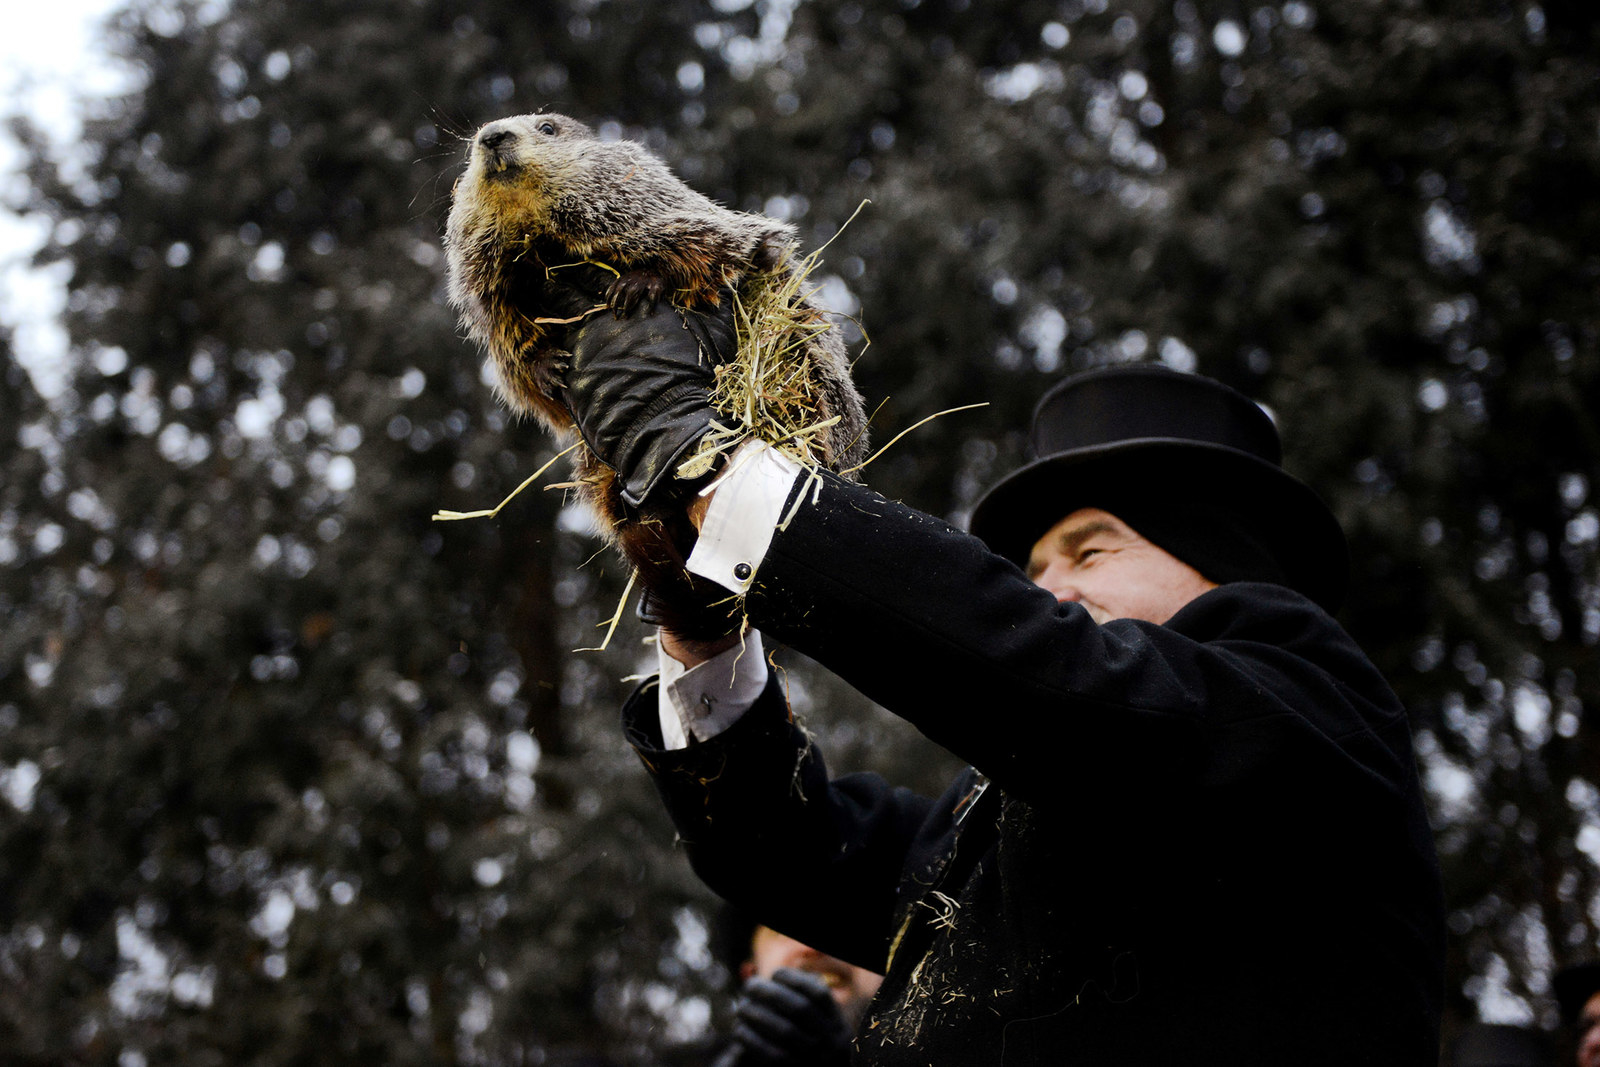 Punxsutawney Phil is introduced to the crowd on the 133rd Groundhog Day in Punxsutawney, Pennsylvania, U.S., February 2, 2019. REUTERS/Alan Freed TPX IMAGES OF THE DAY - RC1BA0F5AA00